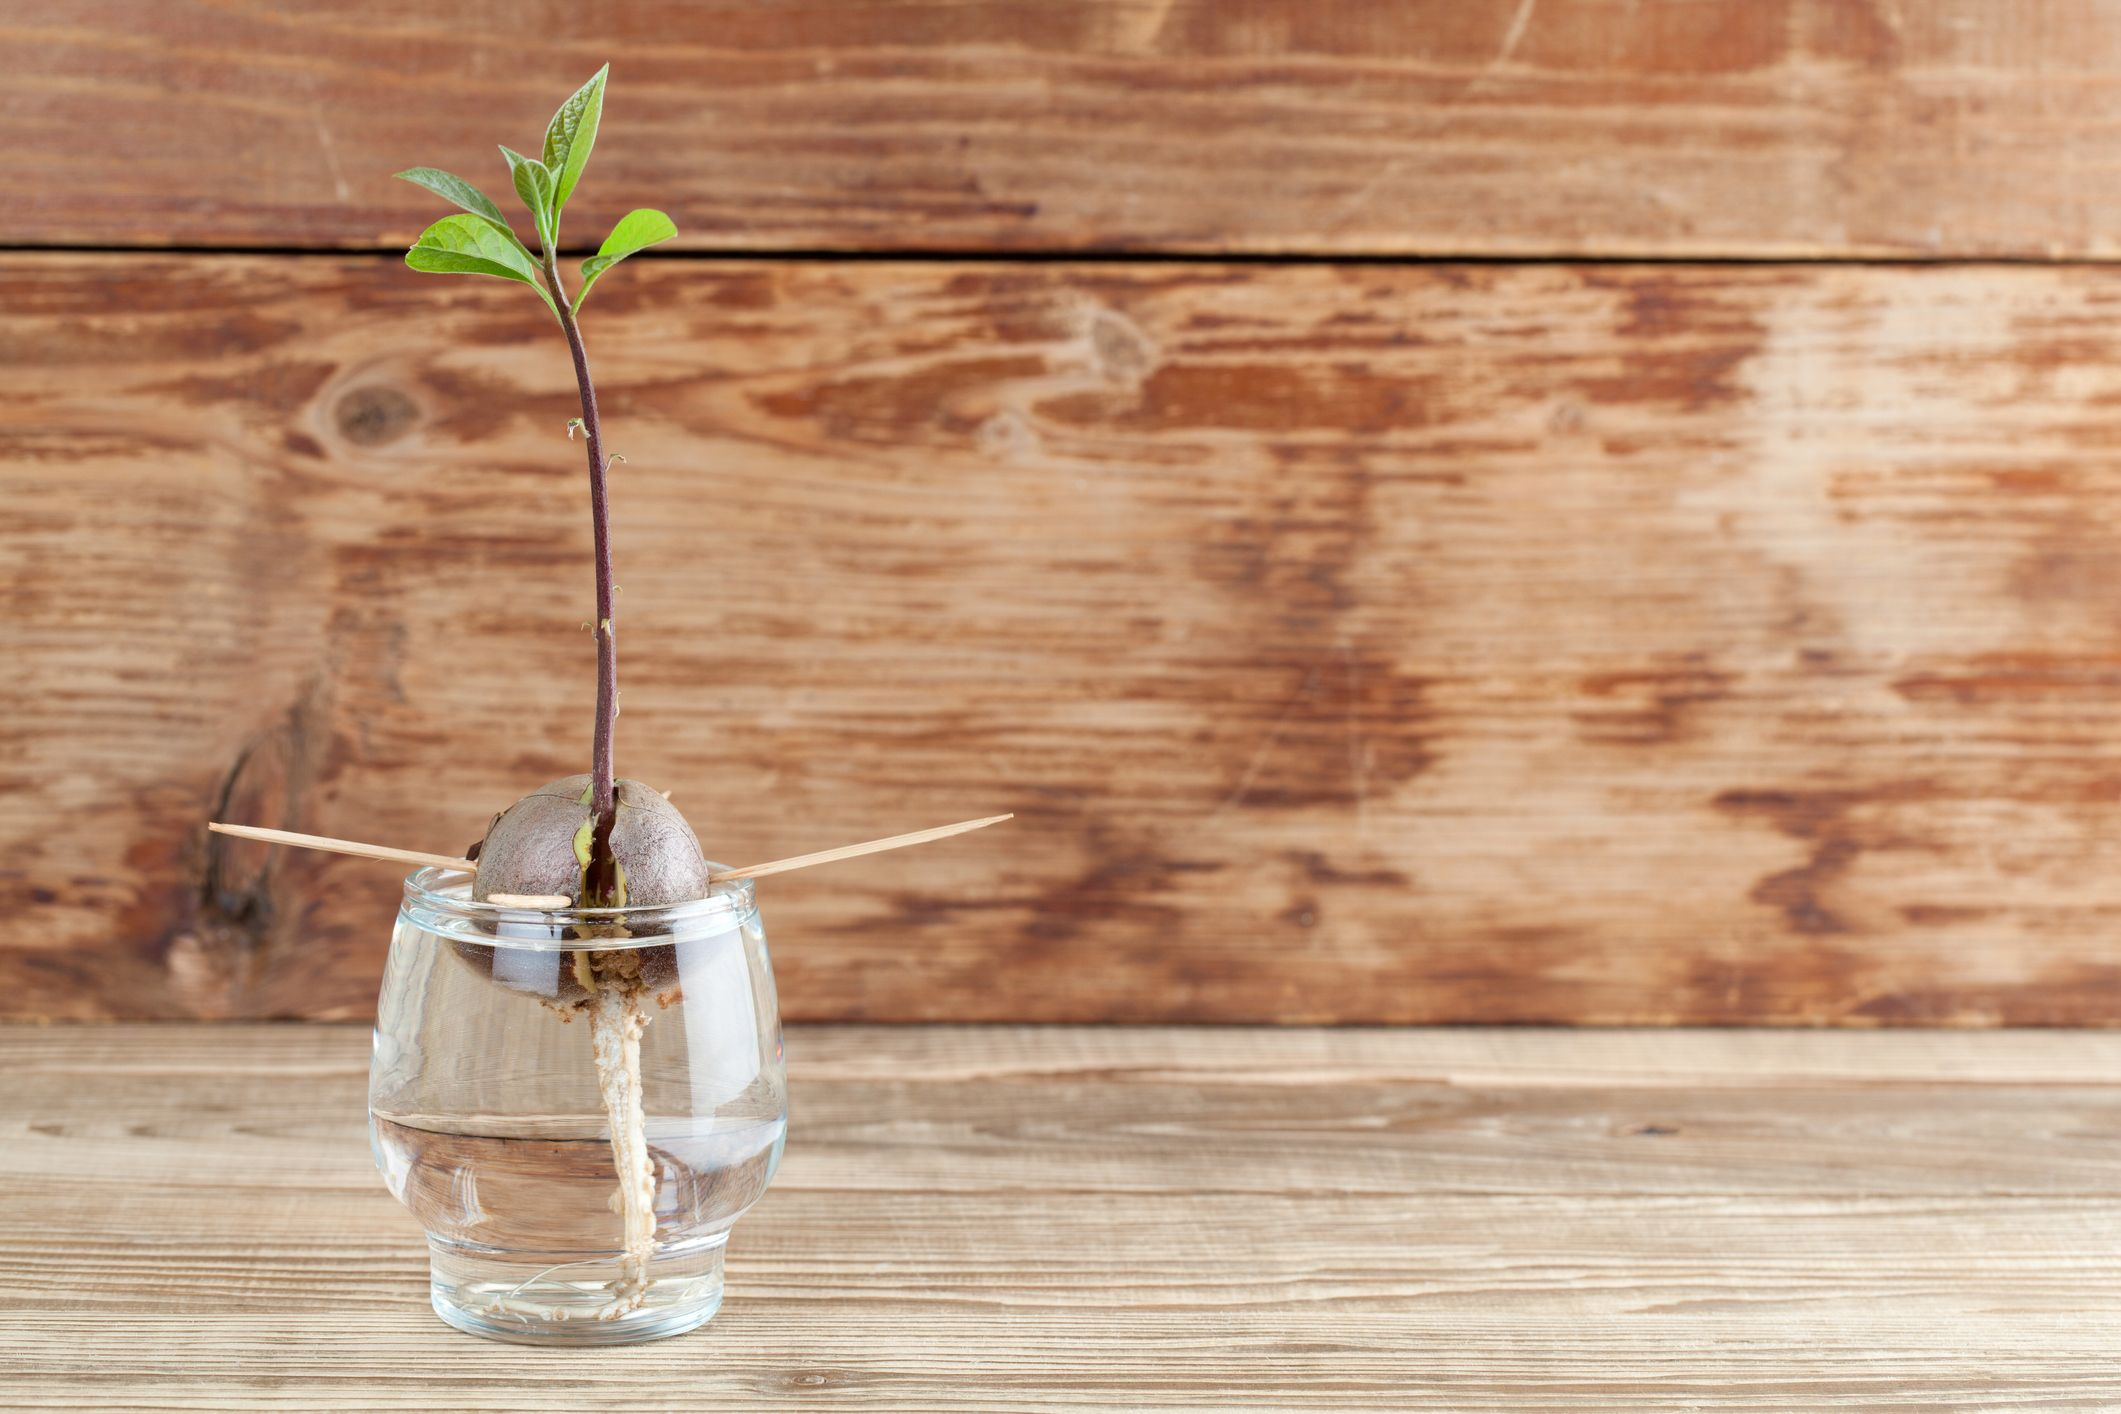 How to Grow an Avocado Tree - Growing an Avocado From a Pit